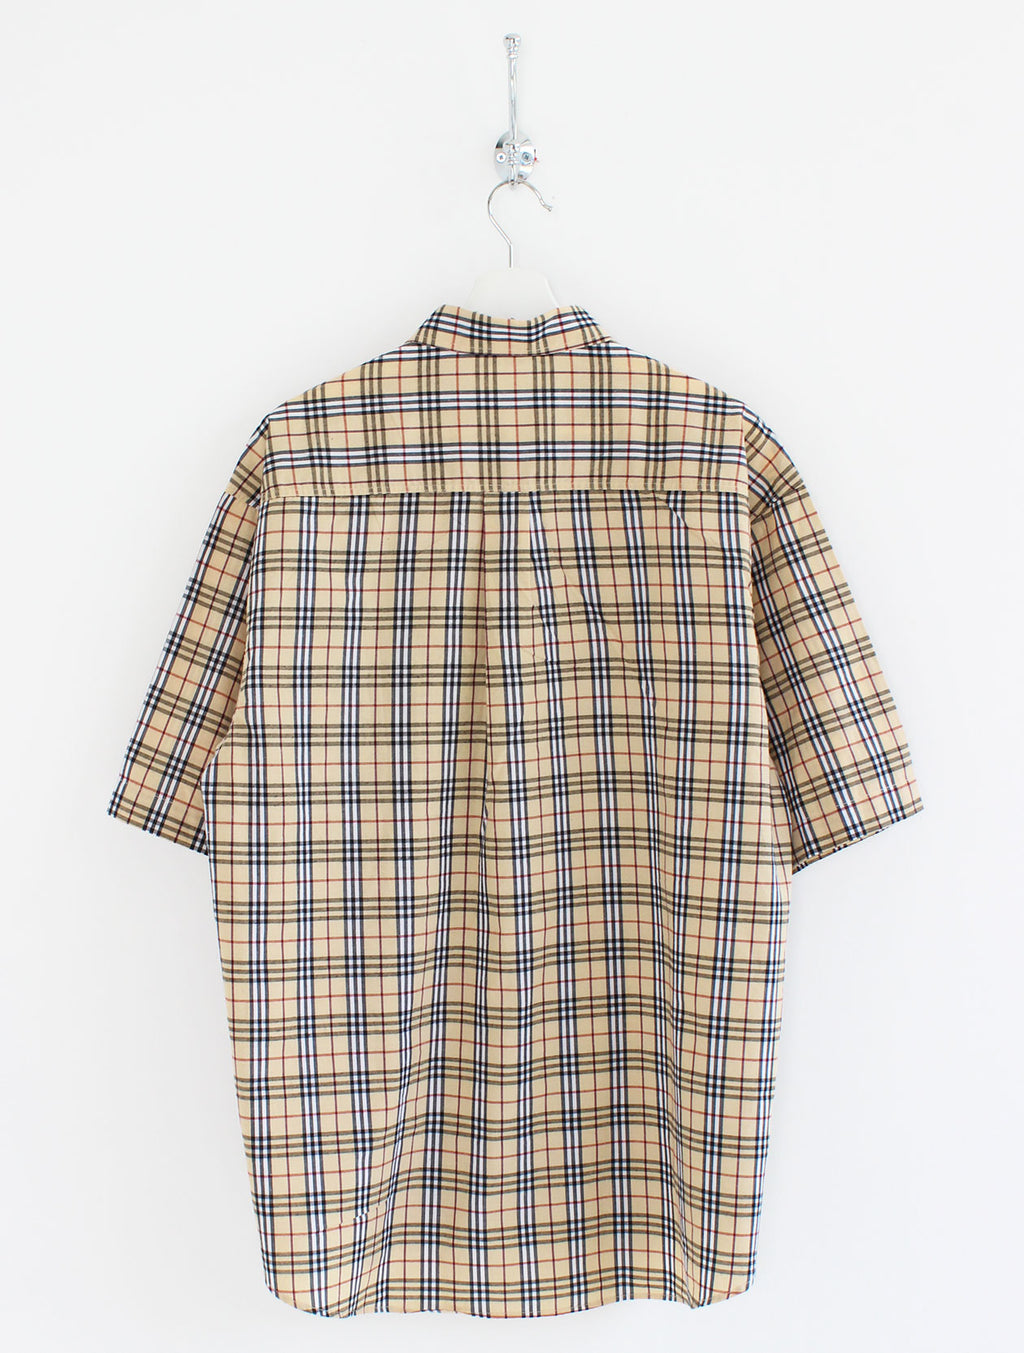 Burberry Shirt (XXL)